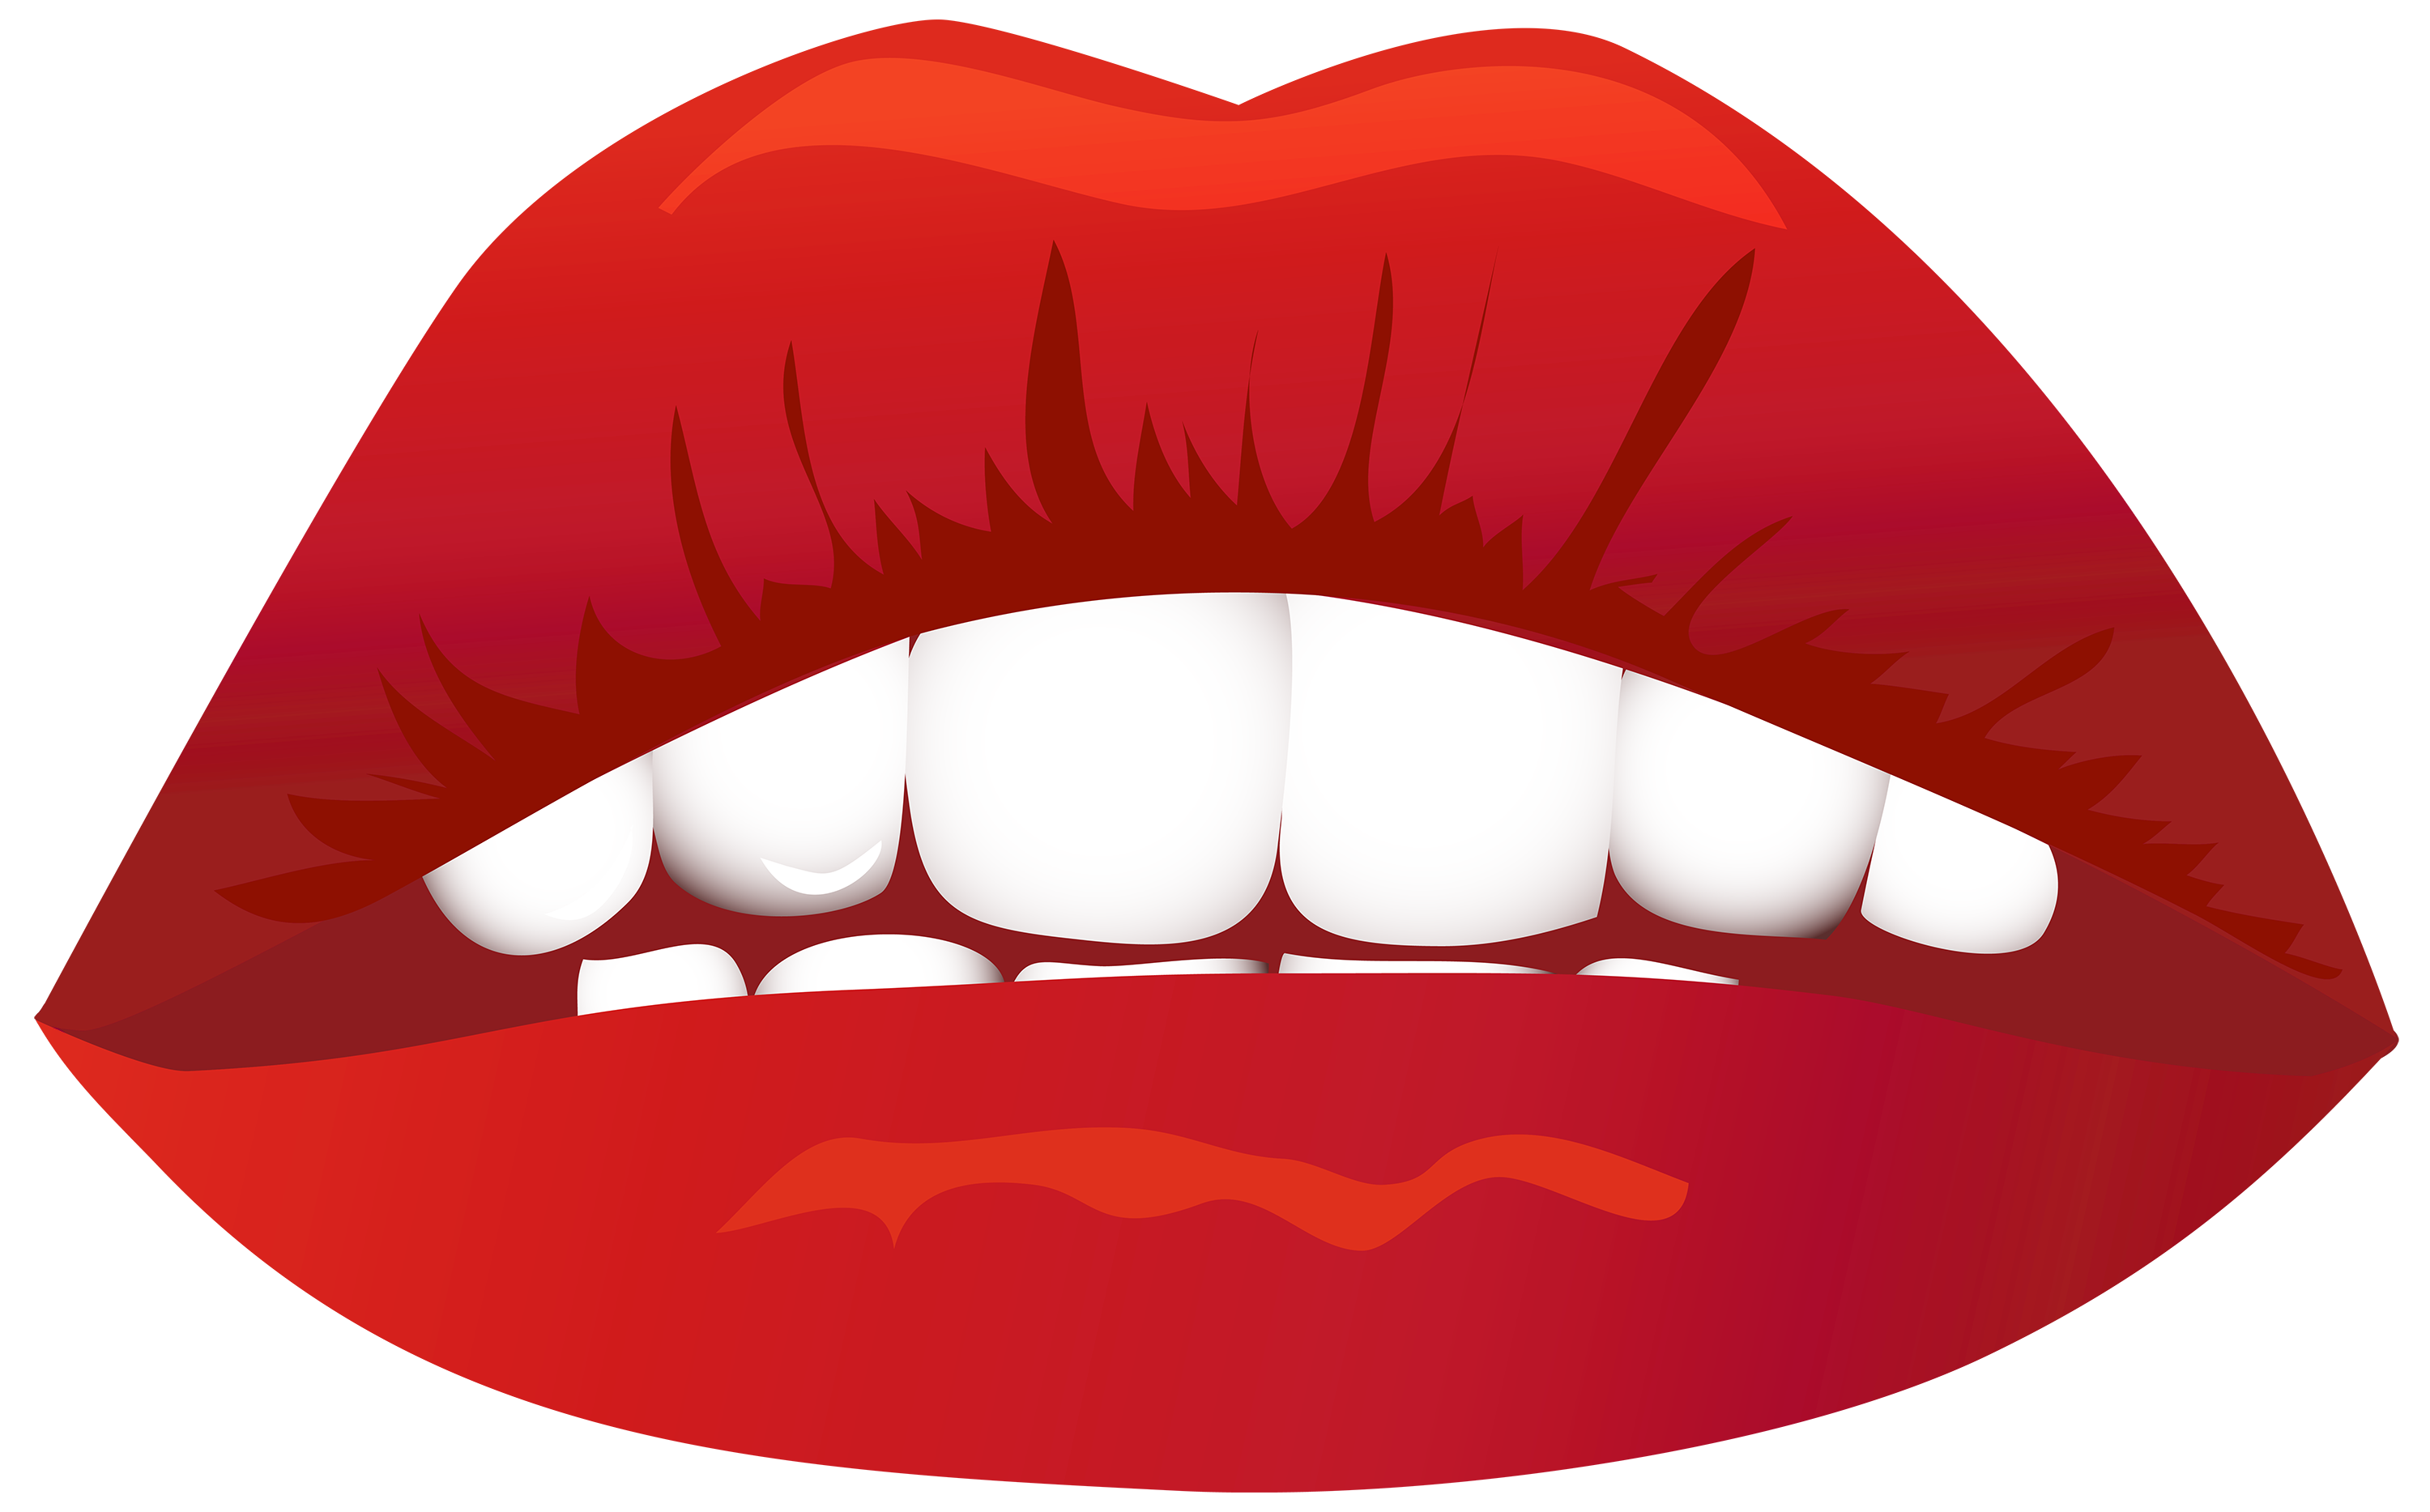 clip art royalty free stock Mouth clipart. Side view free on.